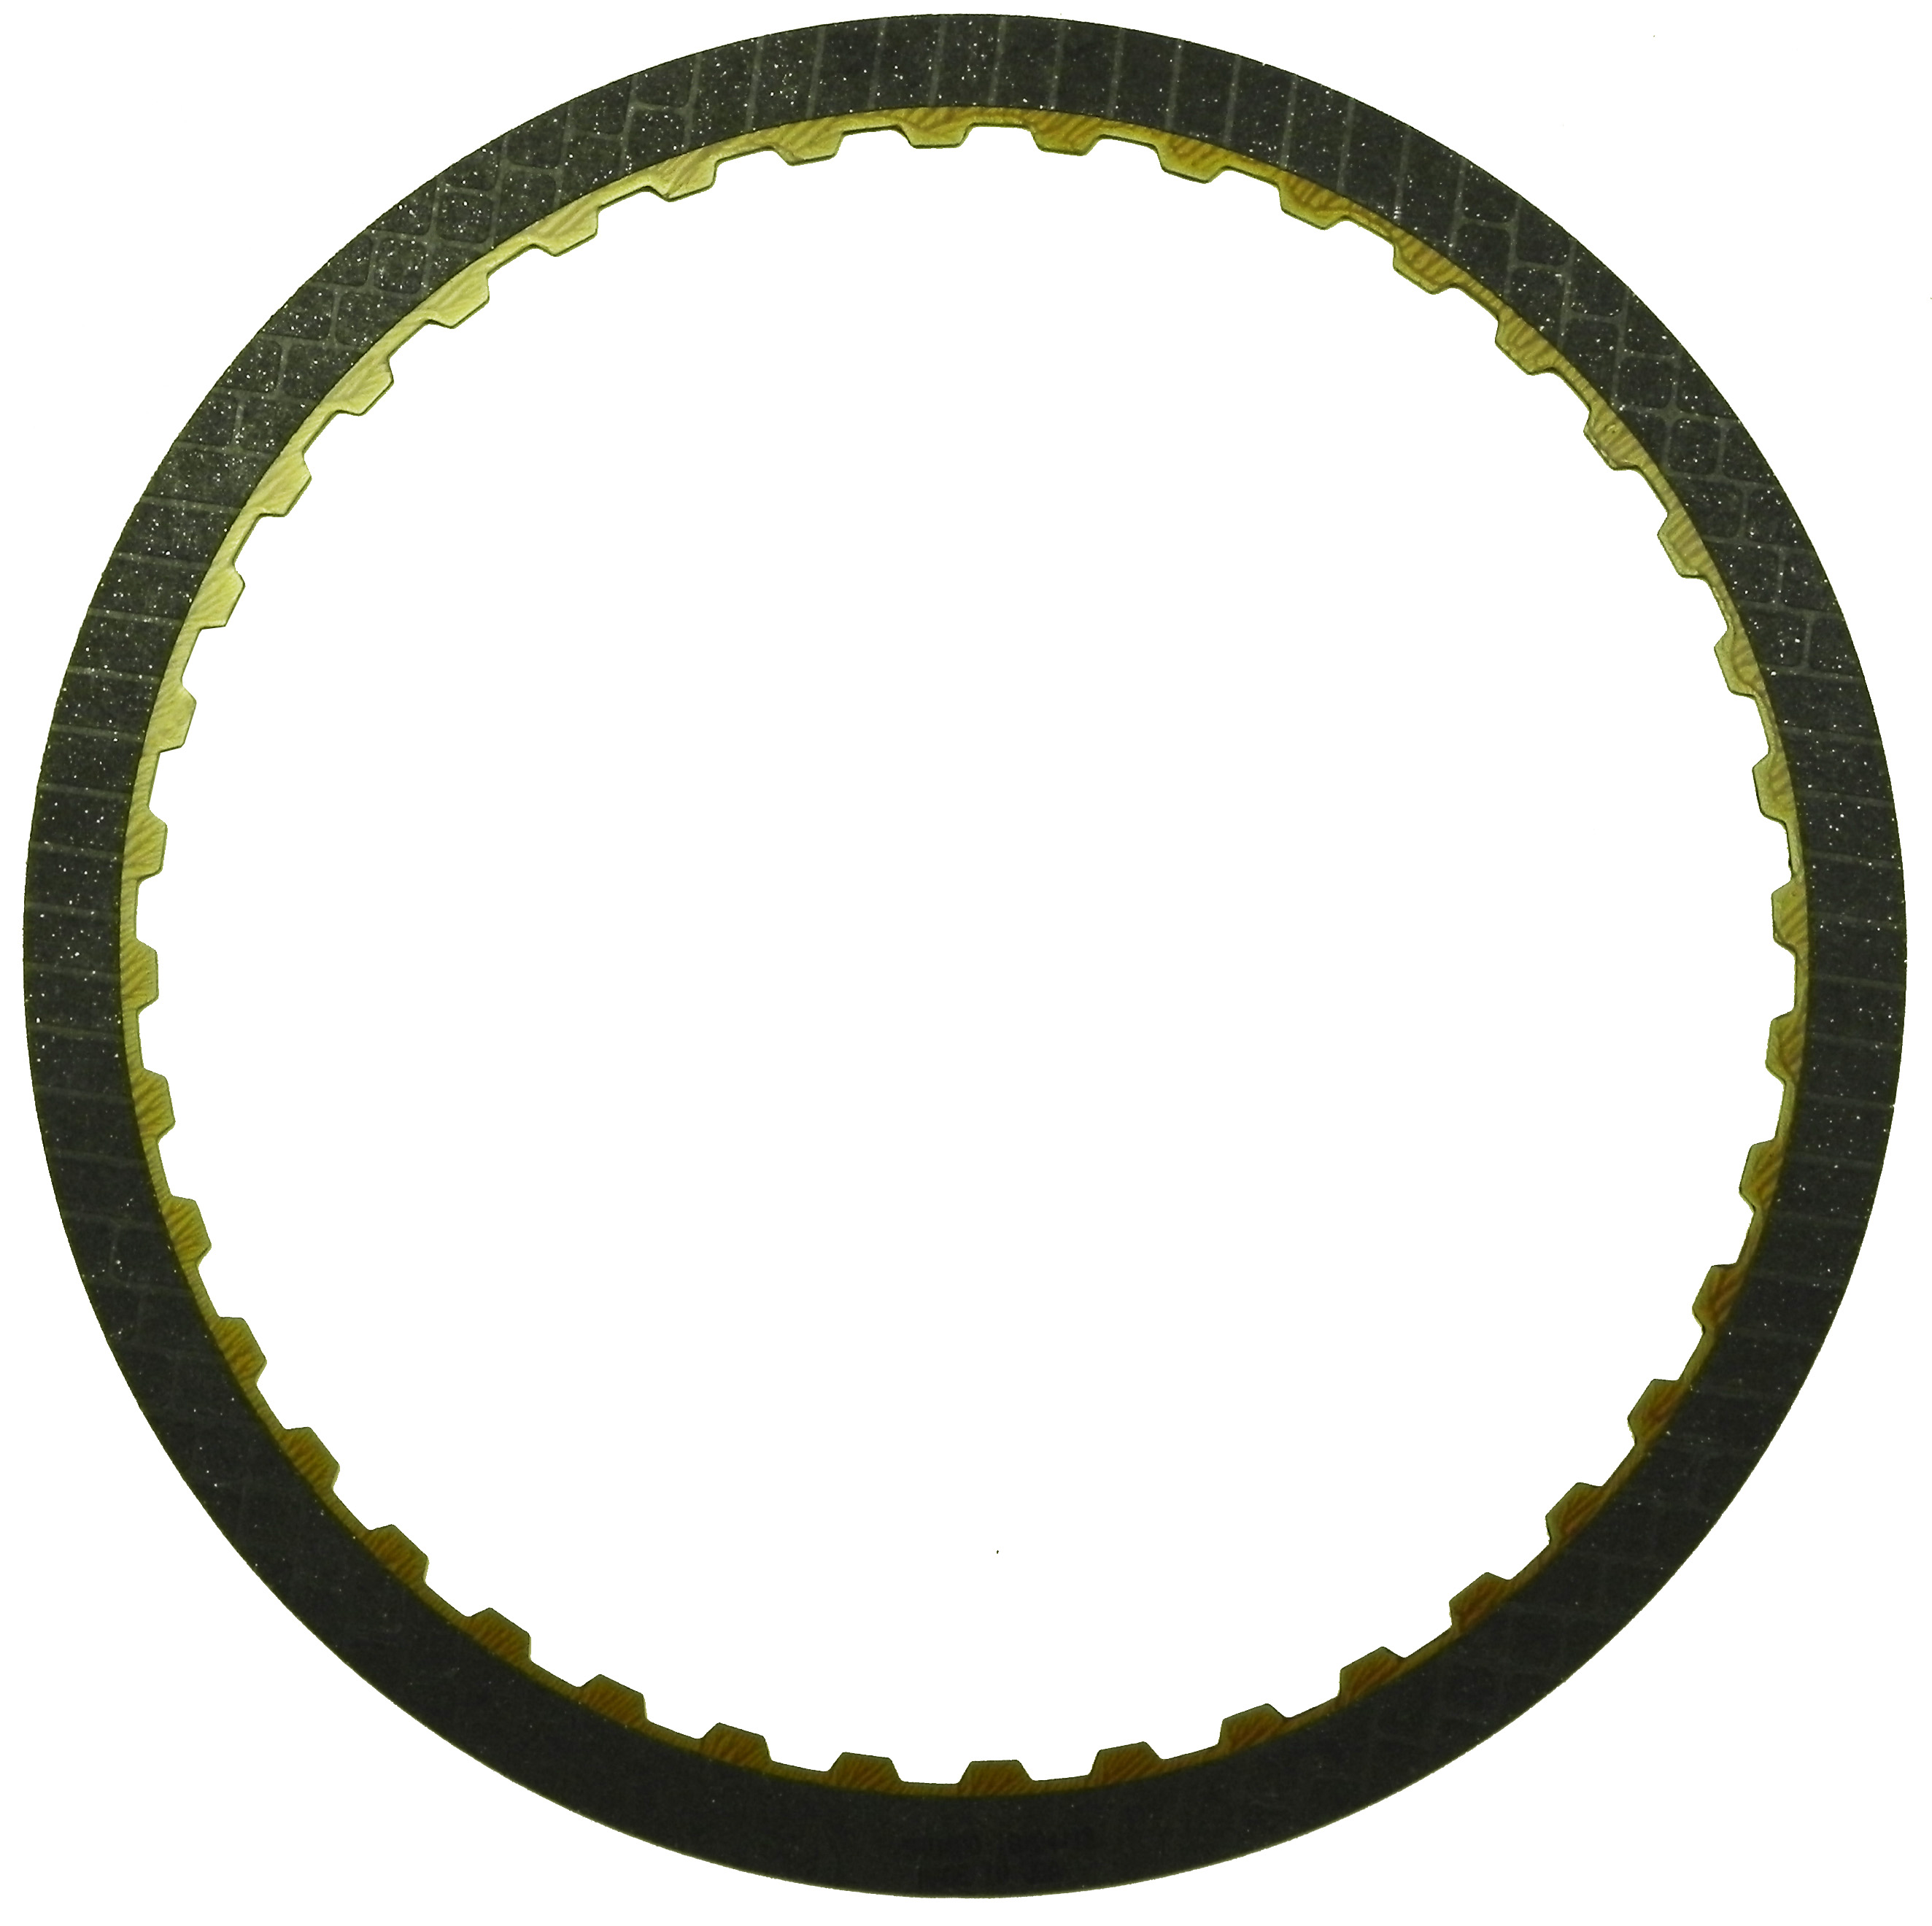 R560480 | 2007-ON Friction Clutch Plate High Energy C3 (3-5), Reverse (Rear) Waved High Energy